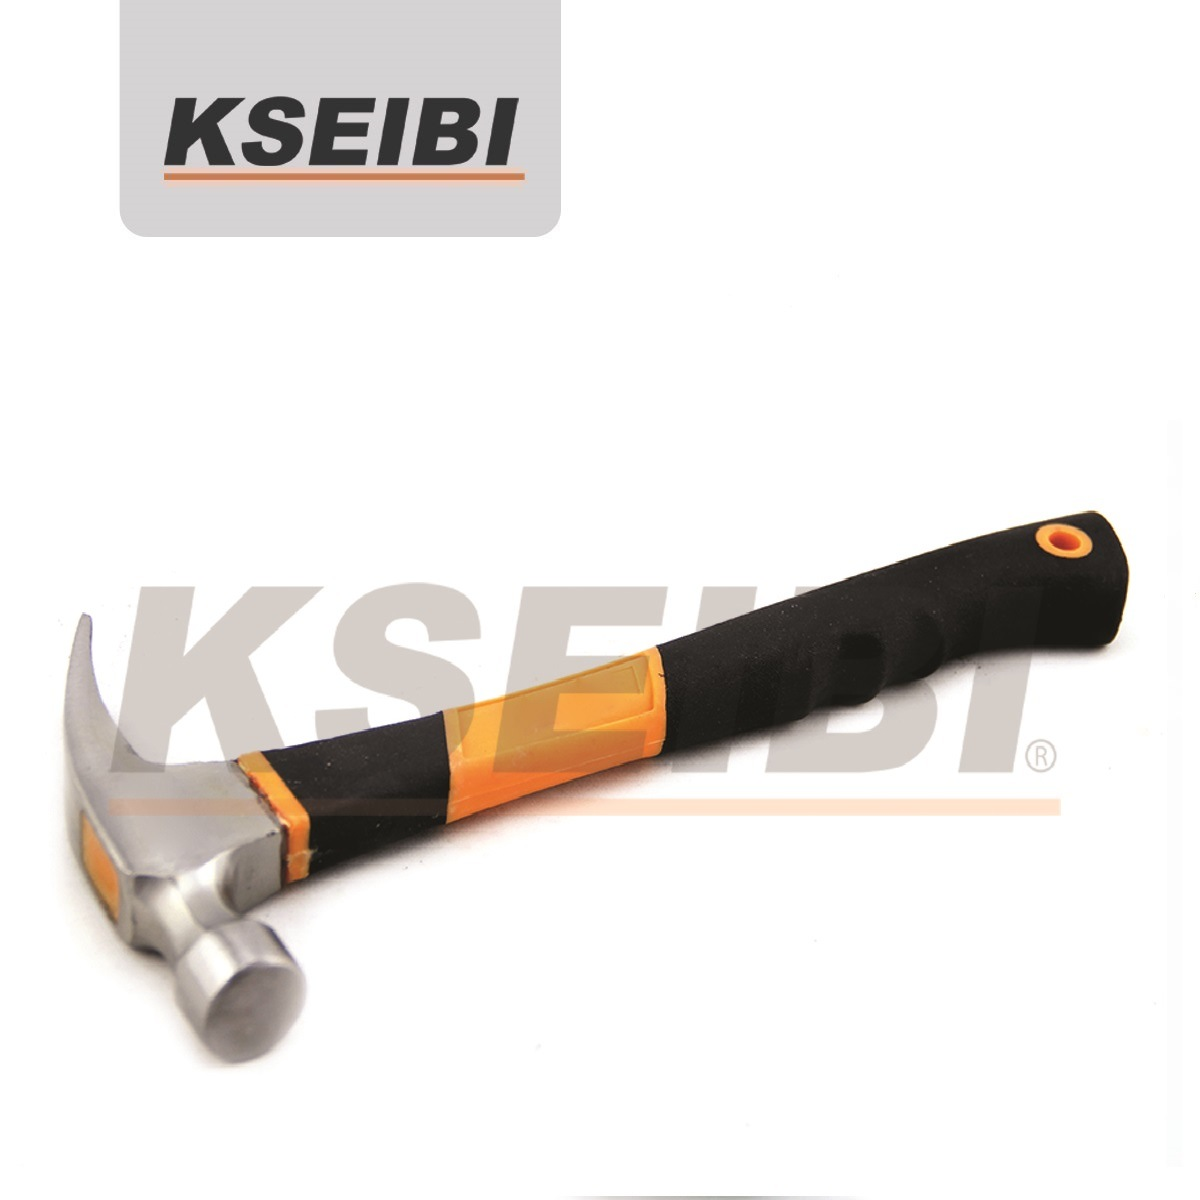 Kseibi Power Curved/Straight Head Claw Hammer with Rubber Handle